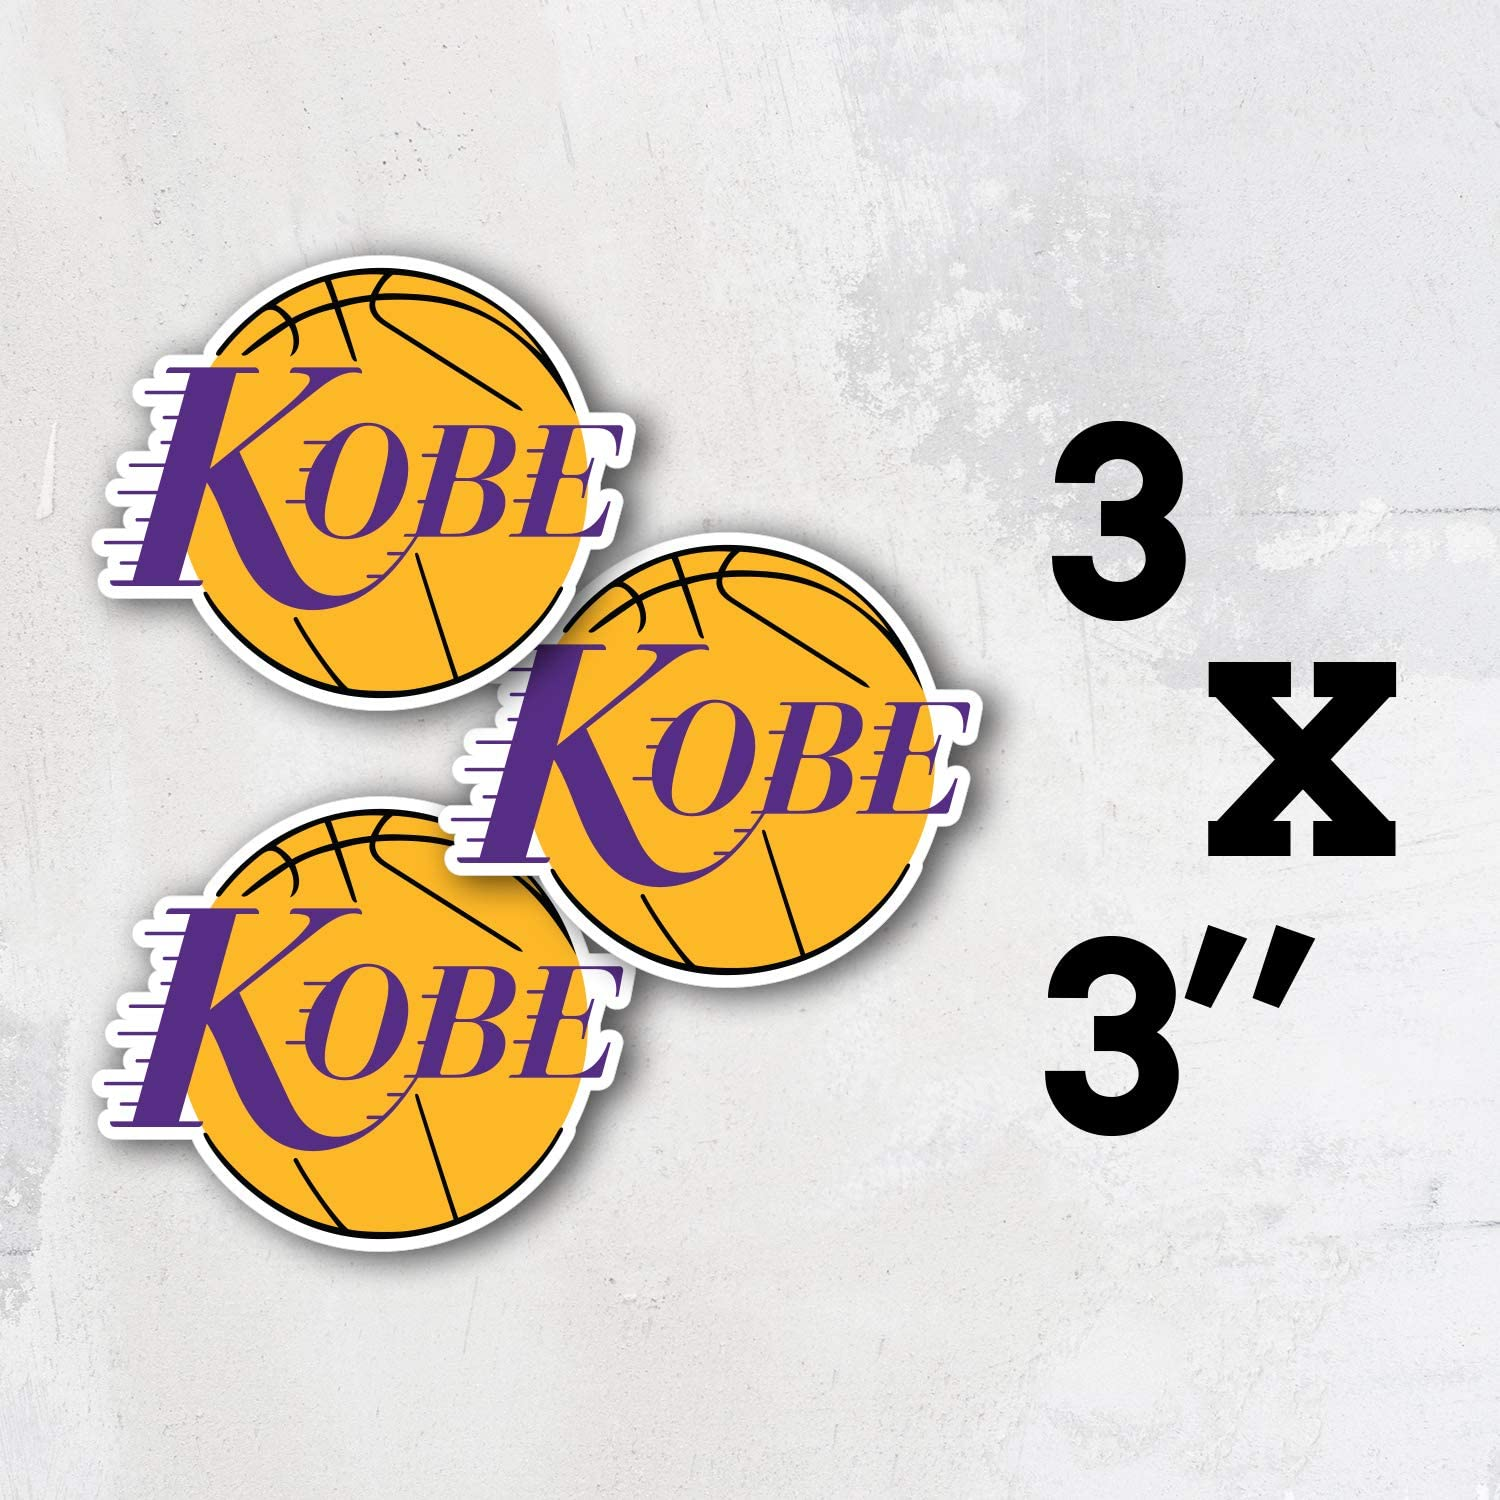 3 Longer Side Koby Bryant Logo Lakers Basketball Los Angeles Vinyl Sticker Art Decal Set of 3 Pieces